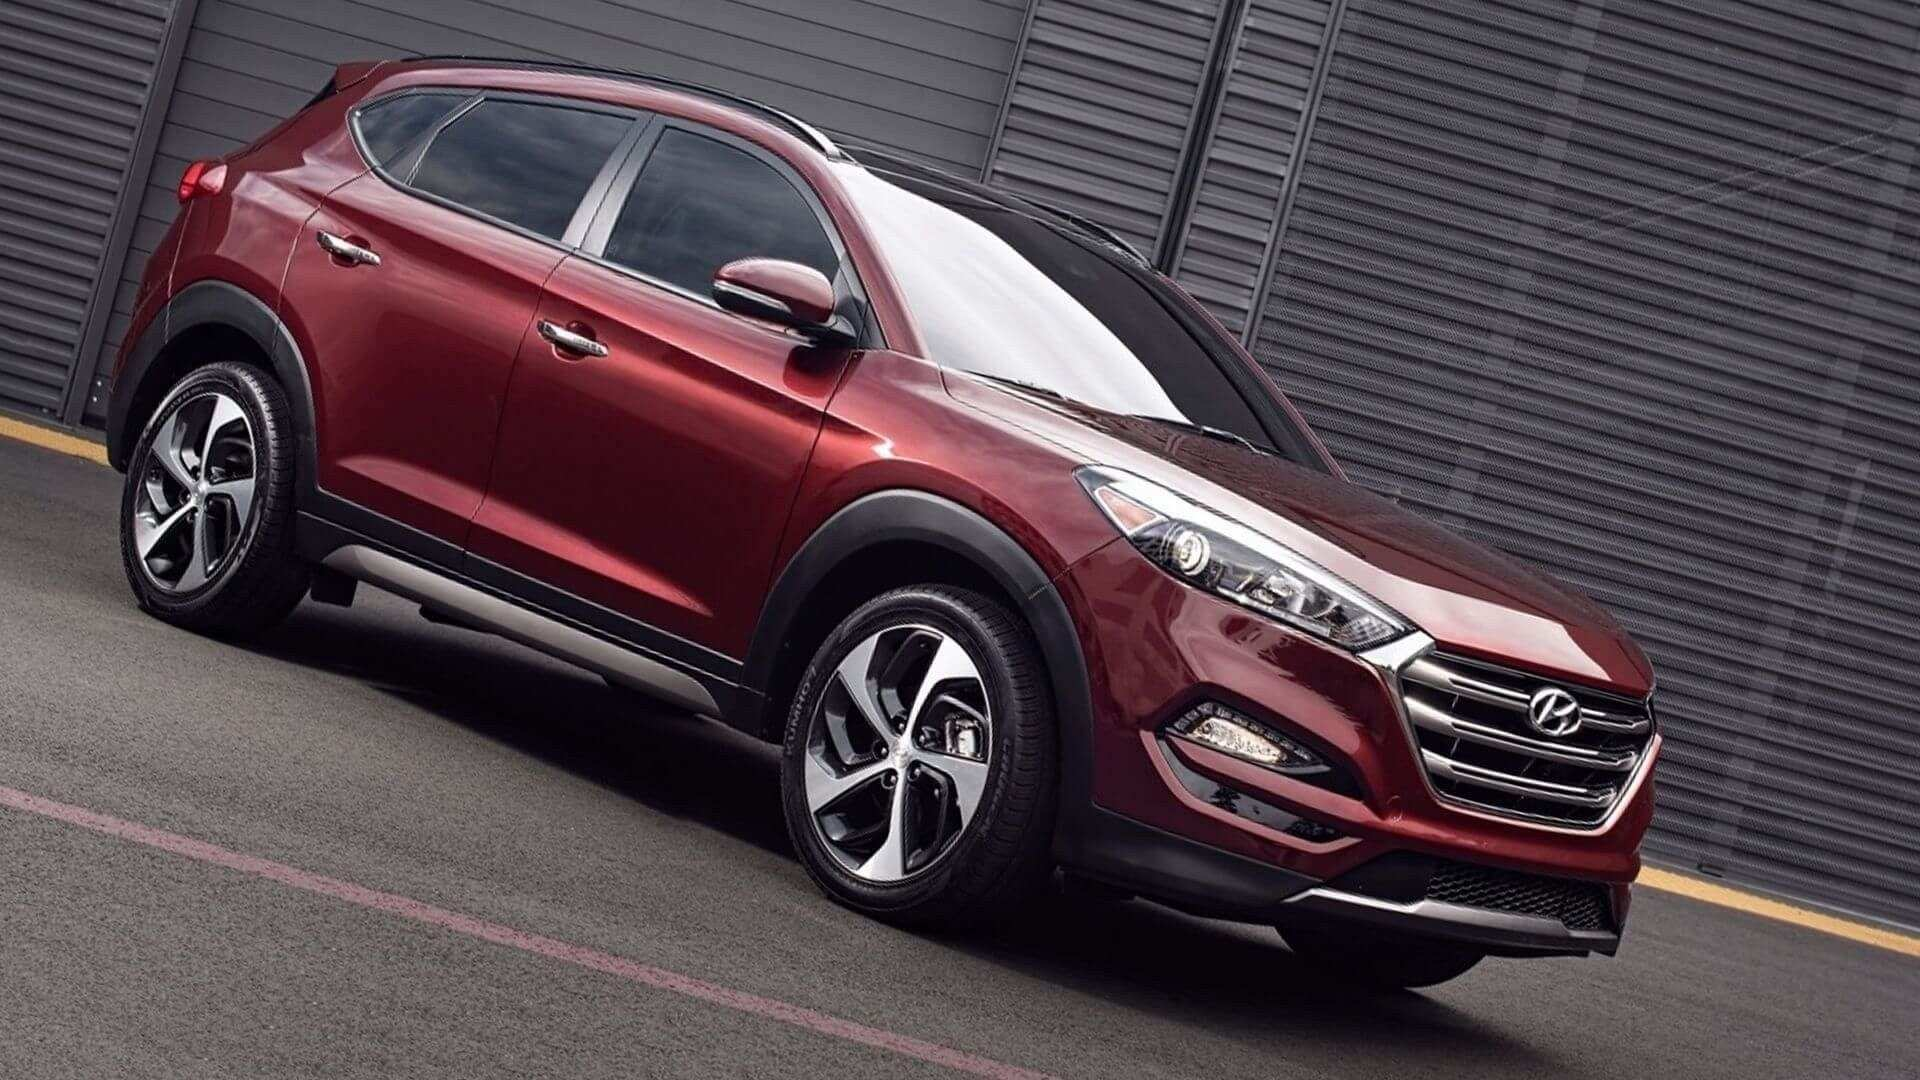 87 All New Hyundai Tucson 2020 Release Date First Drive for Hyundai Tucson 2020 Release Date